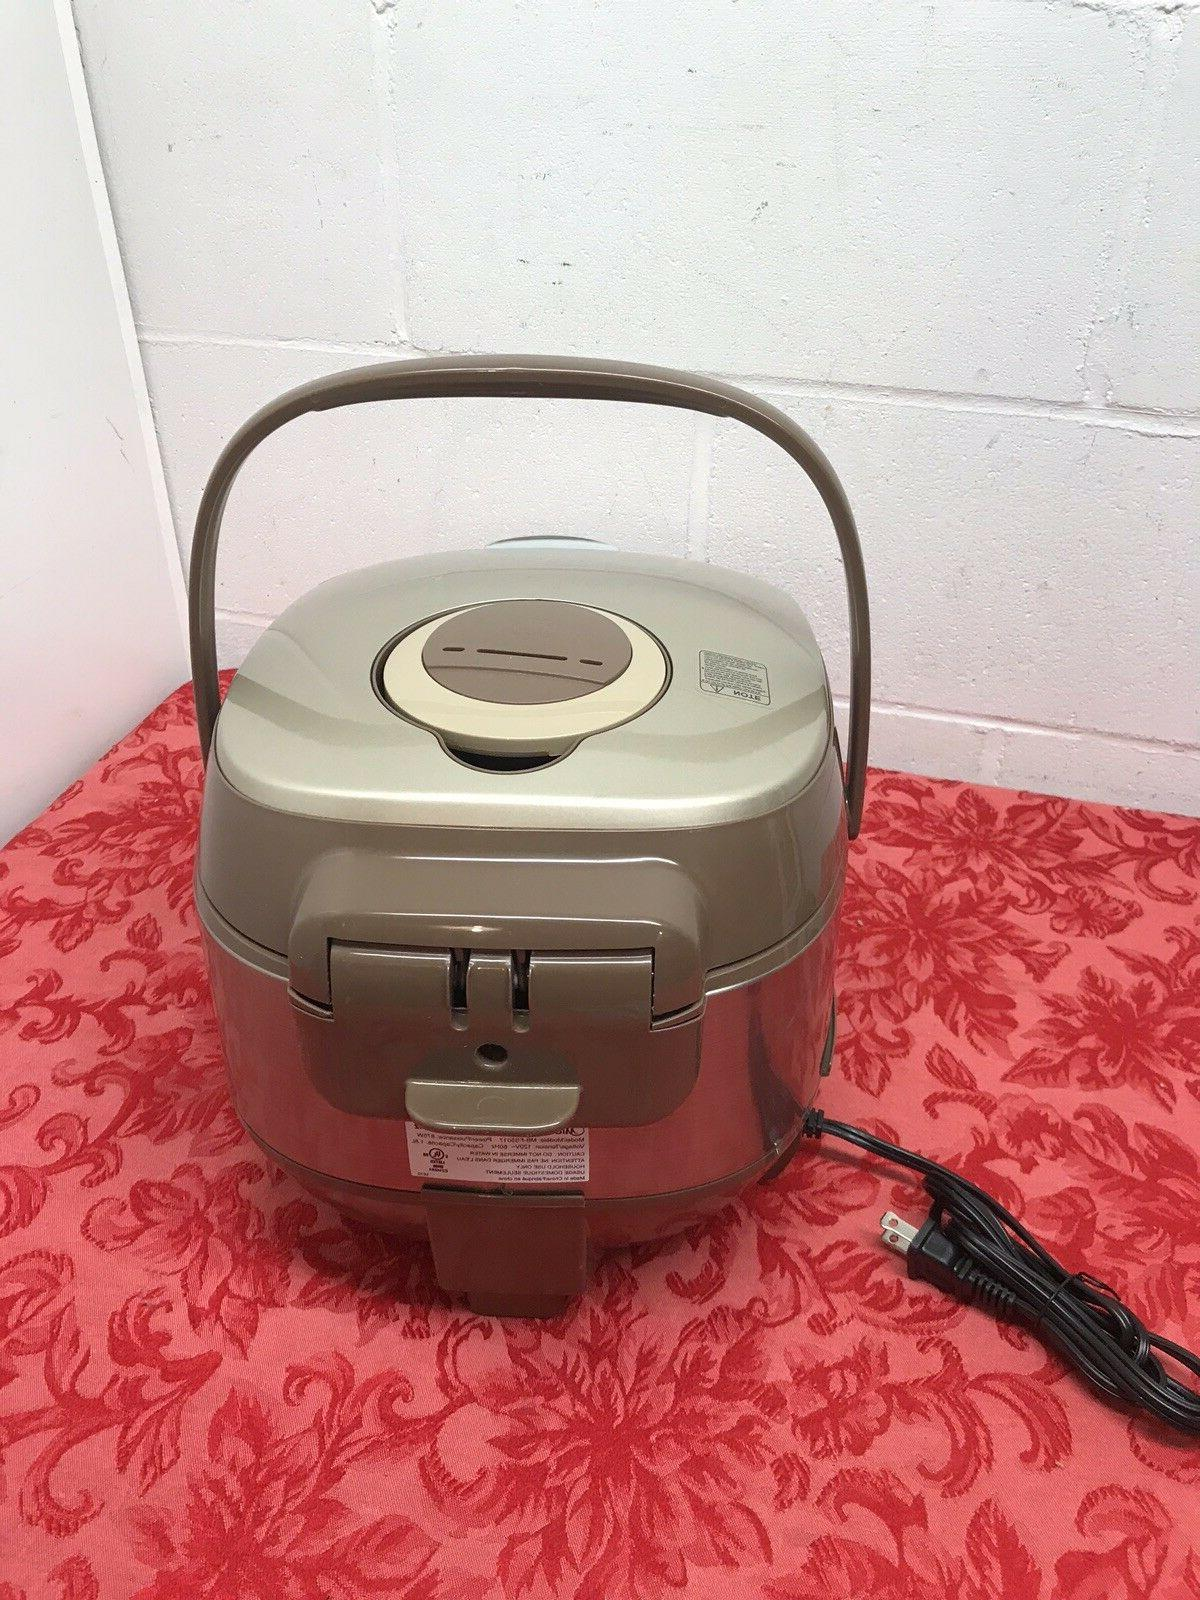 Midea Mb-fs5017 10 C. Smart Cooker Steamer Slow New Other